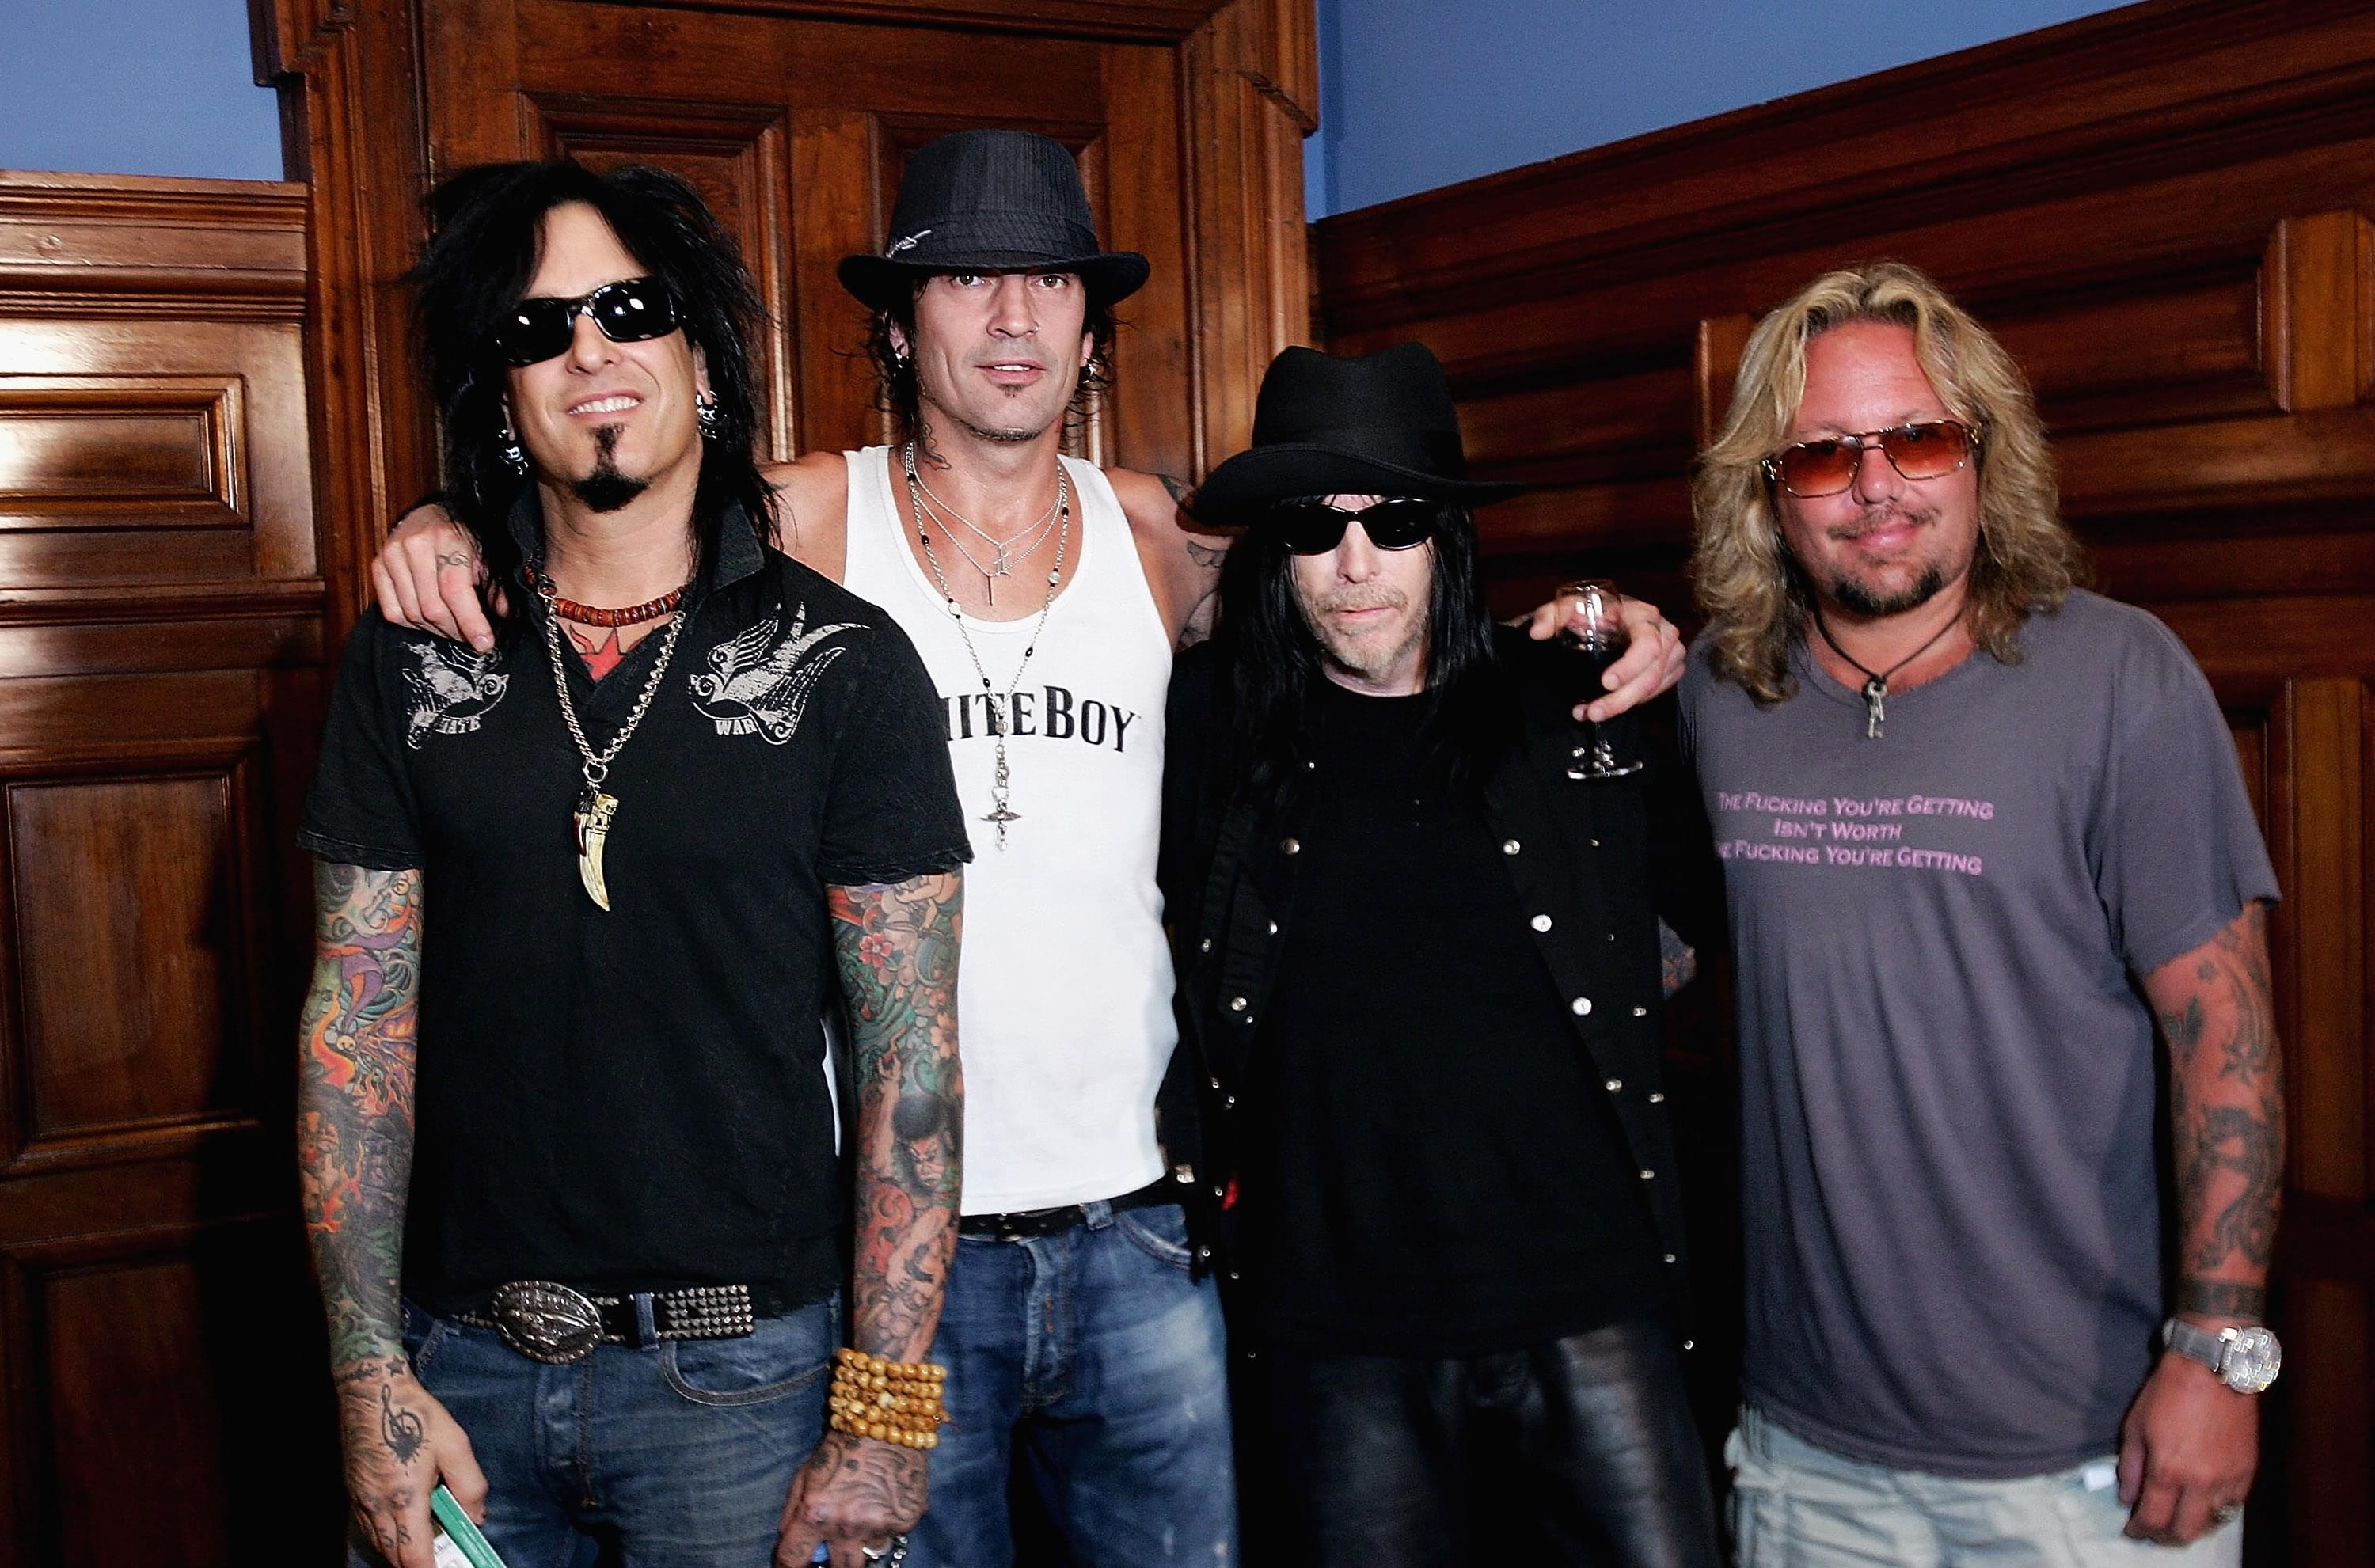 Poison Tour 2020.Motley Crue Announces 2020 Stadium Tour With Poison And Def